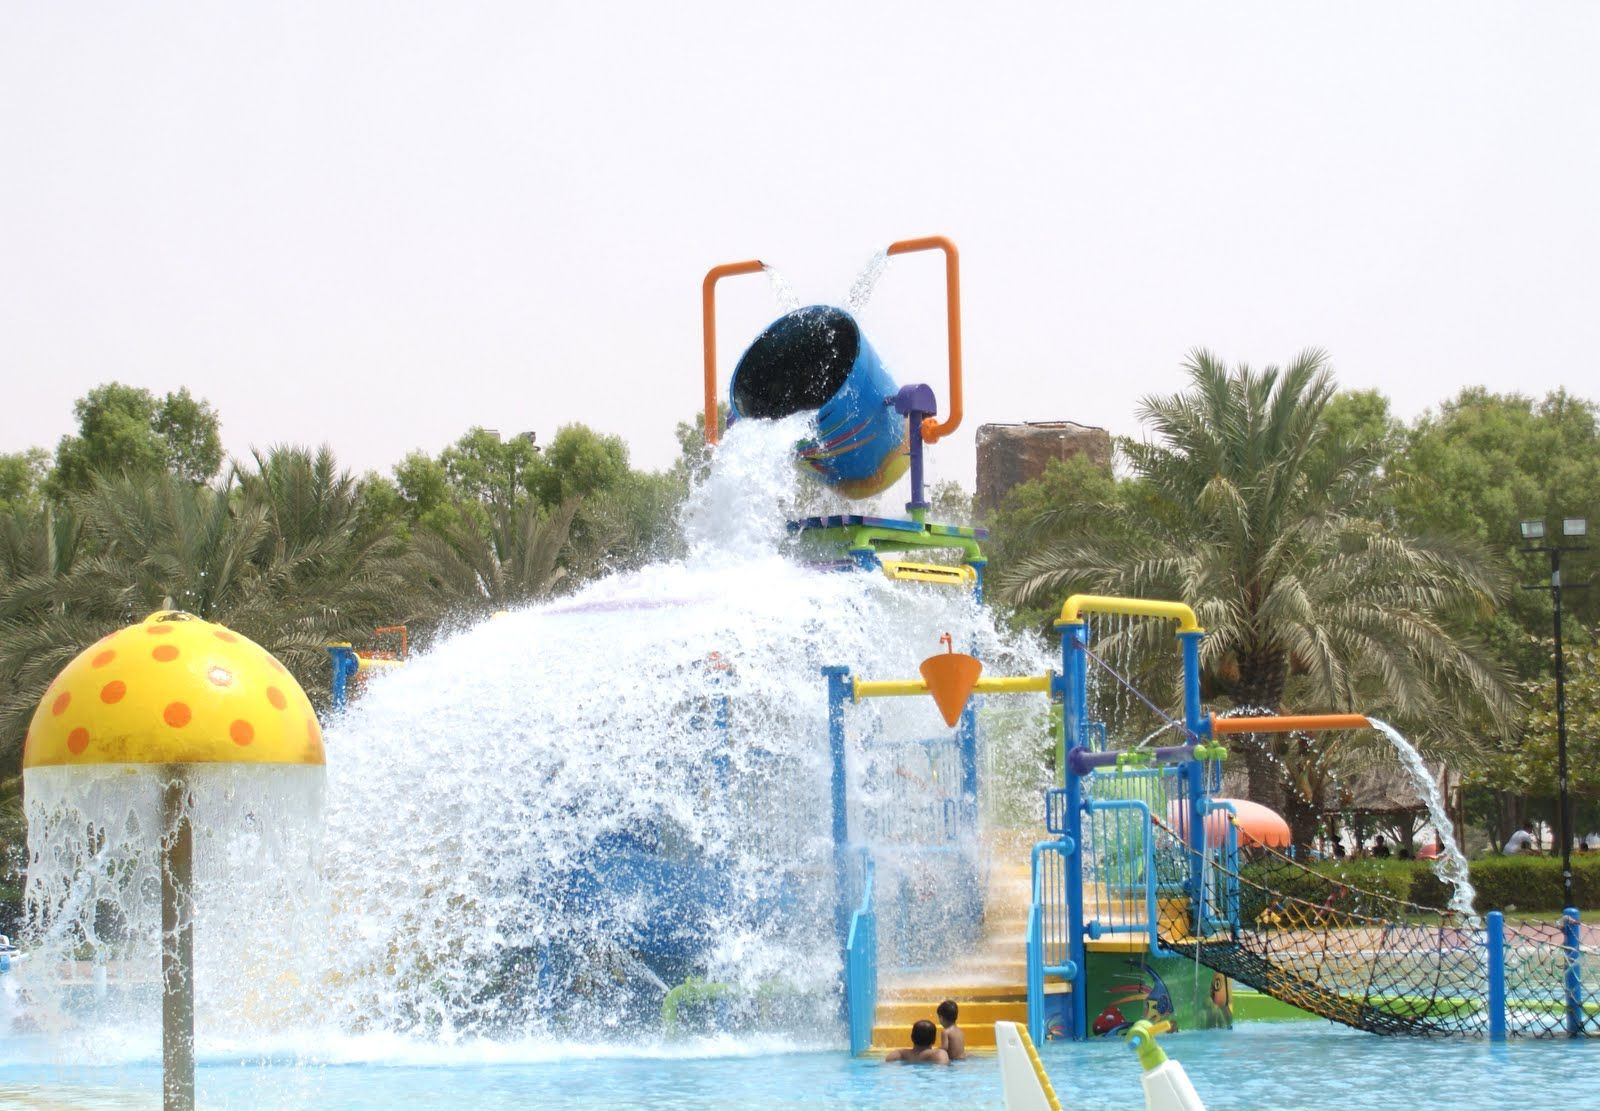 Fish aquarium in umm al quwain - Dreamland Aqua Park In Umm Al Quwain Has 30 Rides And Attractions To Keep Your Adrenaline Pumping Pictured Below Is Geared For Younger Visitors